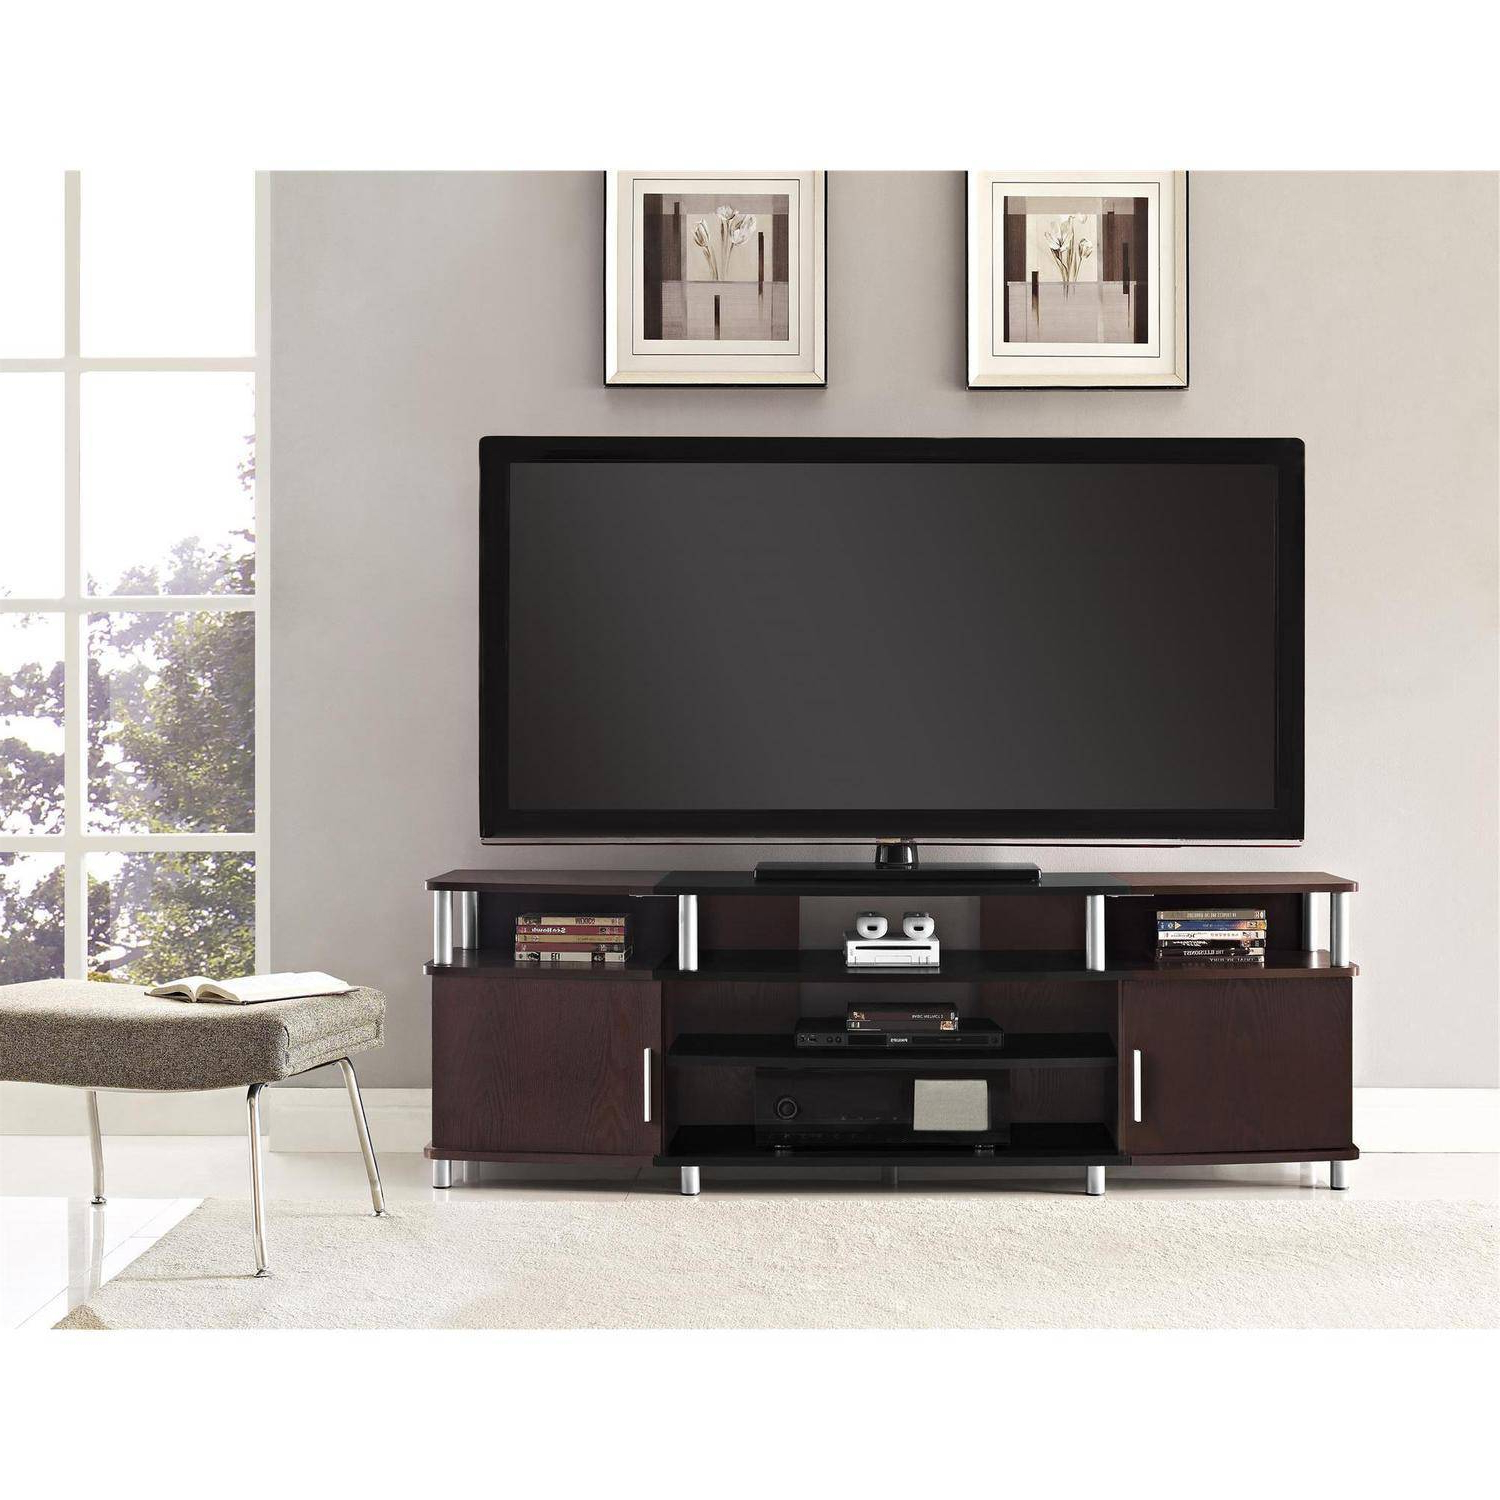 65 Inch Tv Stand Wayfair 55 Corner For 60 Stands With Fireplace 50 Pertaining To Murphy 72 Inch Tv Stands (View 10 of 20)